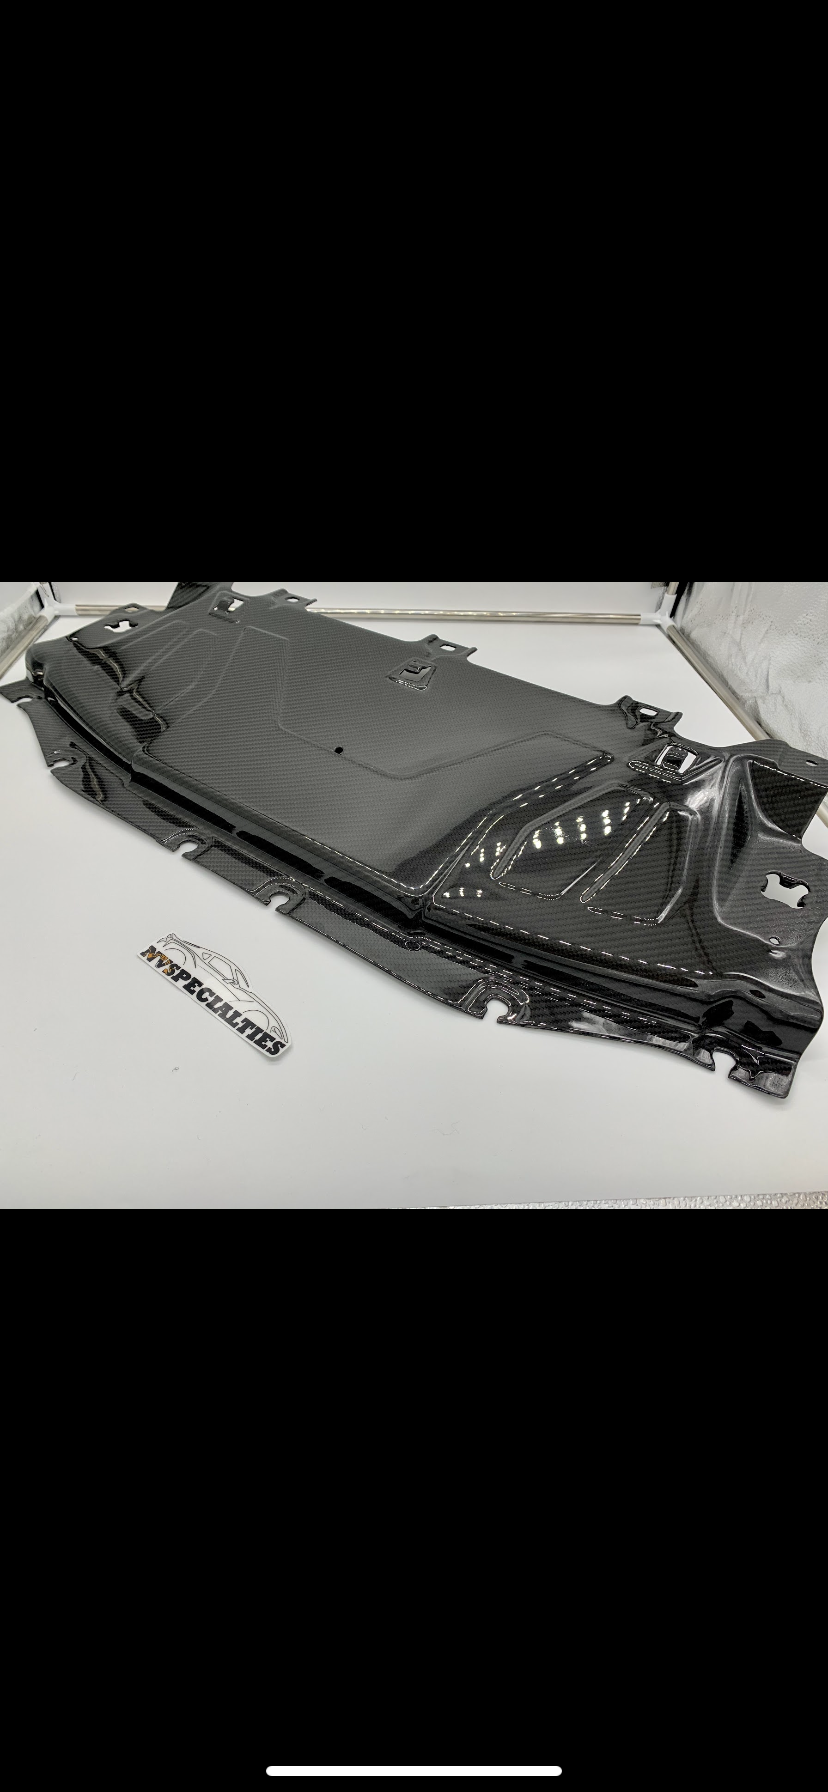 NV Spec. MKV Carbon Radiator Cover